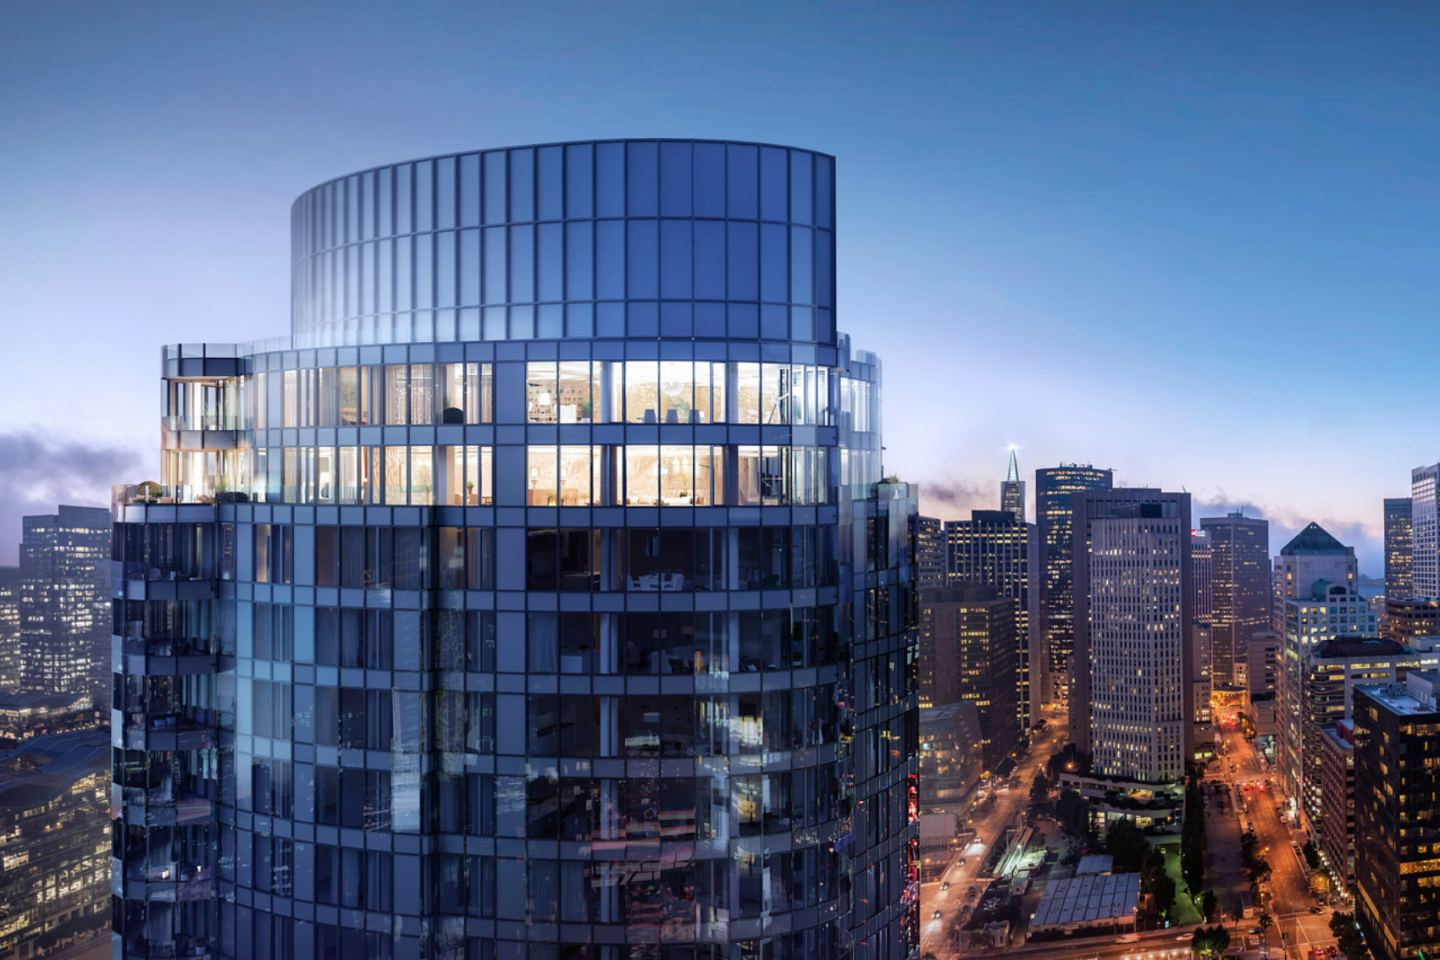 Lumina will occupy the 41st and 42nd floors. It is generating healthy sales and interest from tech executives.